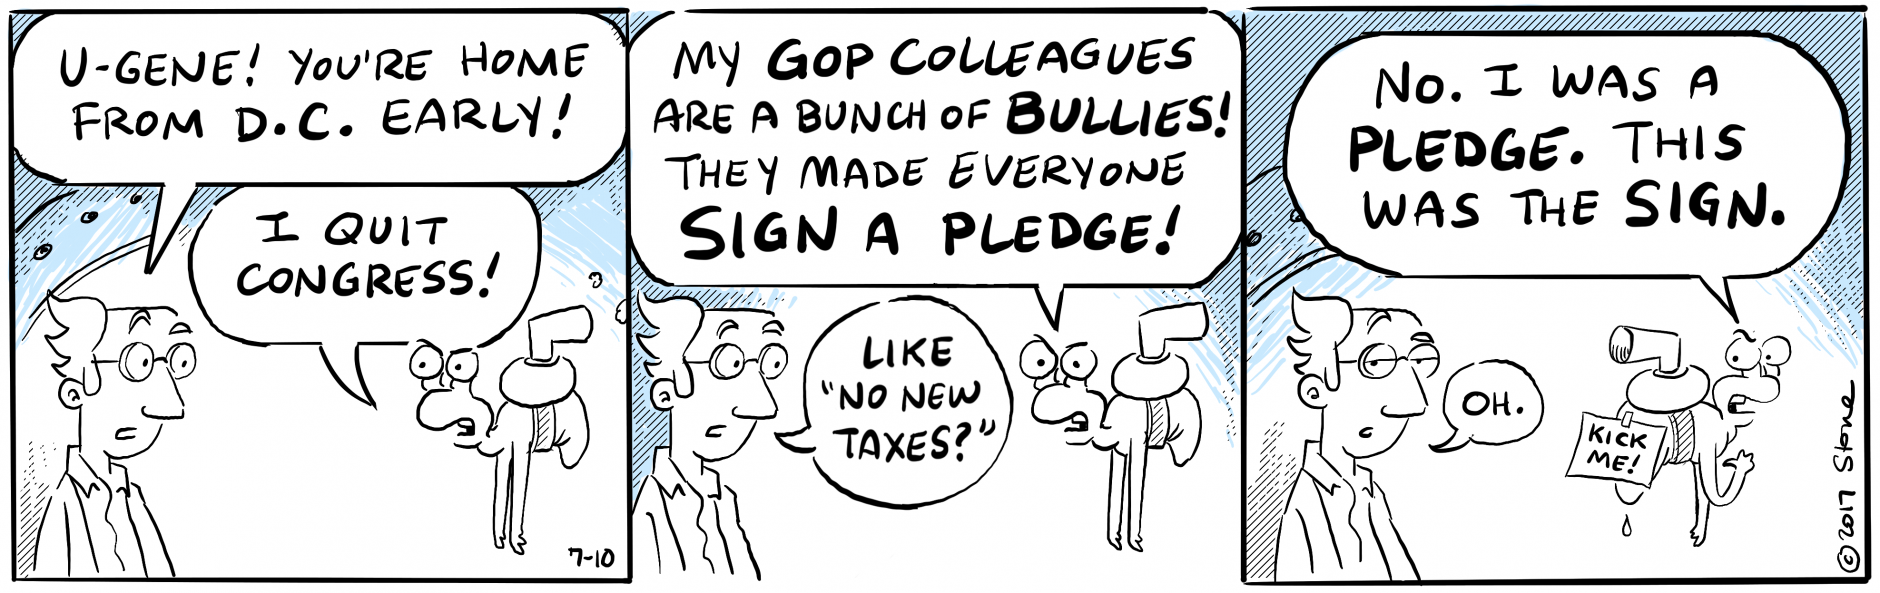 The folks at B-Lab learn that we're a nation divided. #Gerrymandering #webcomic